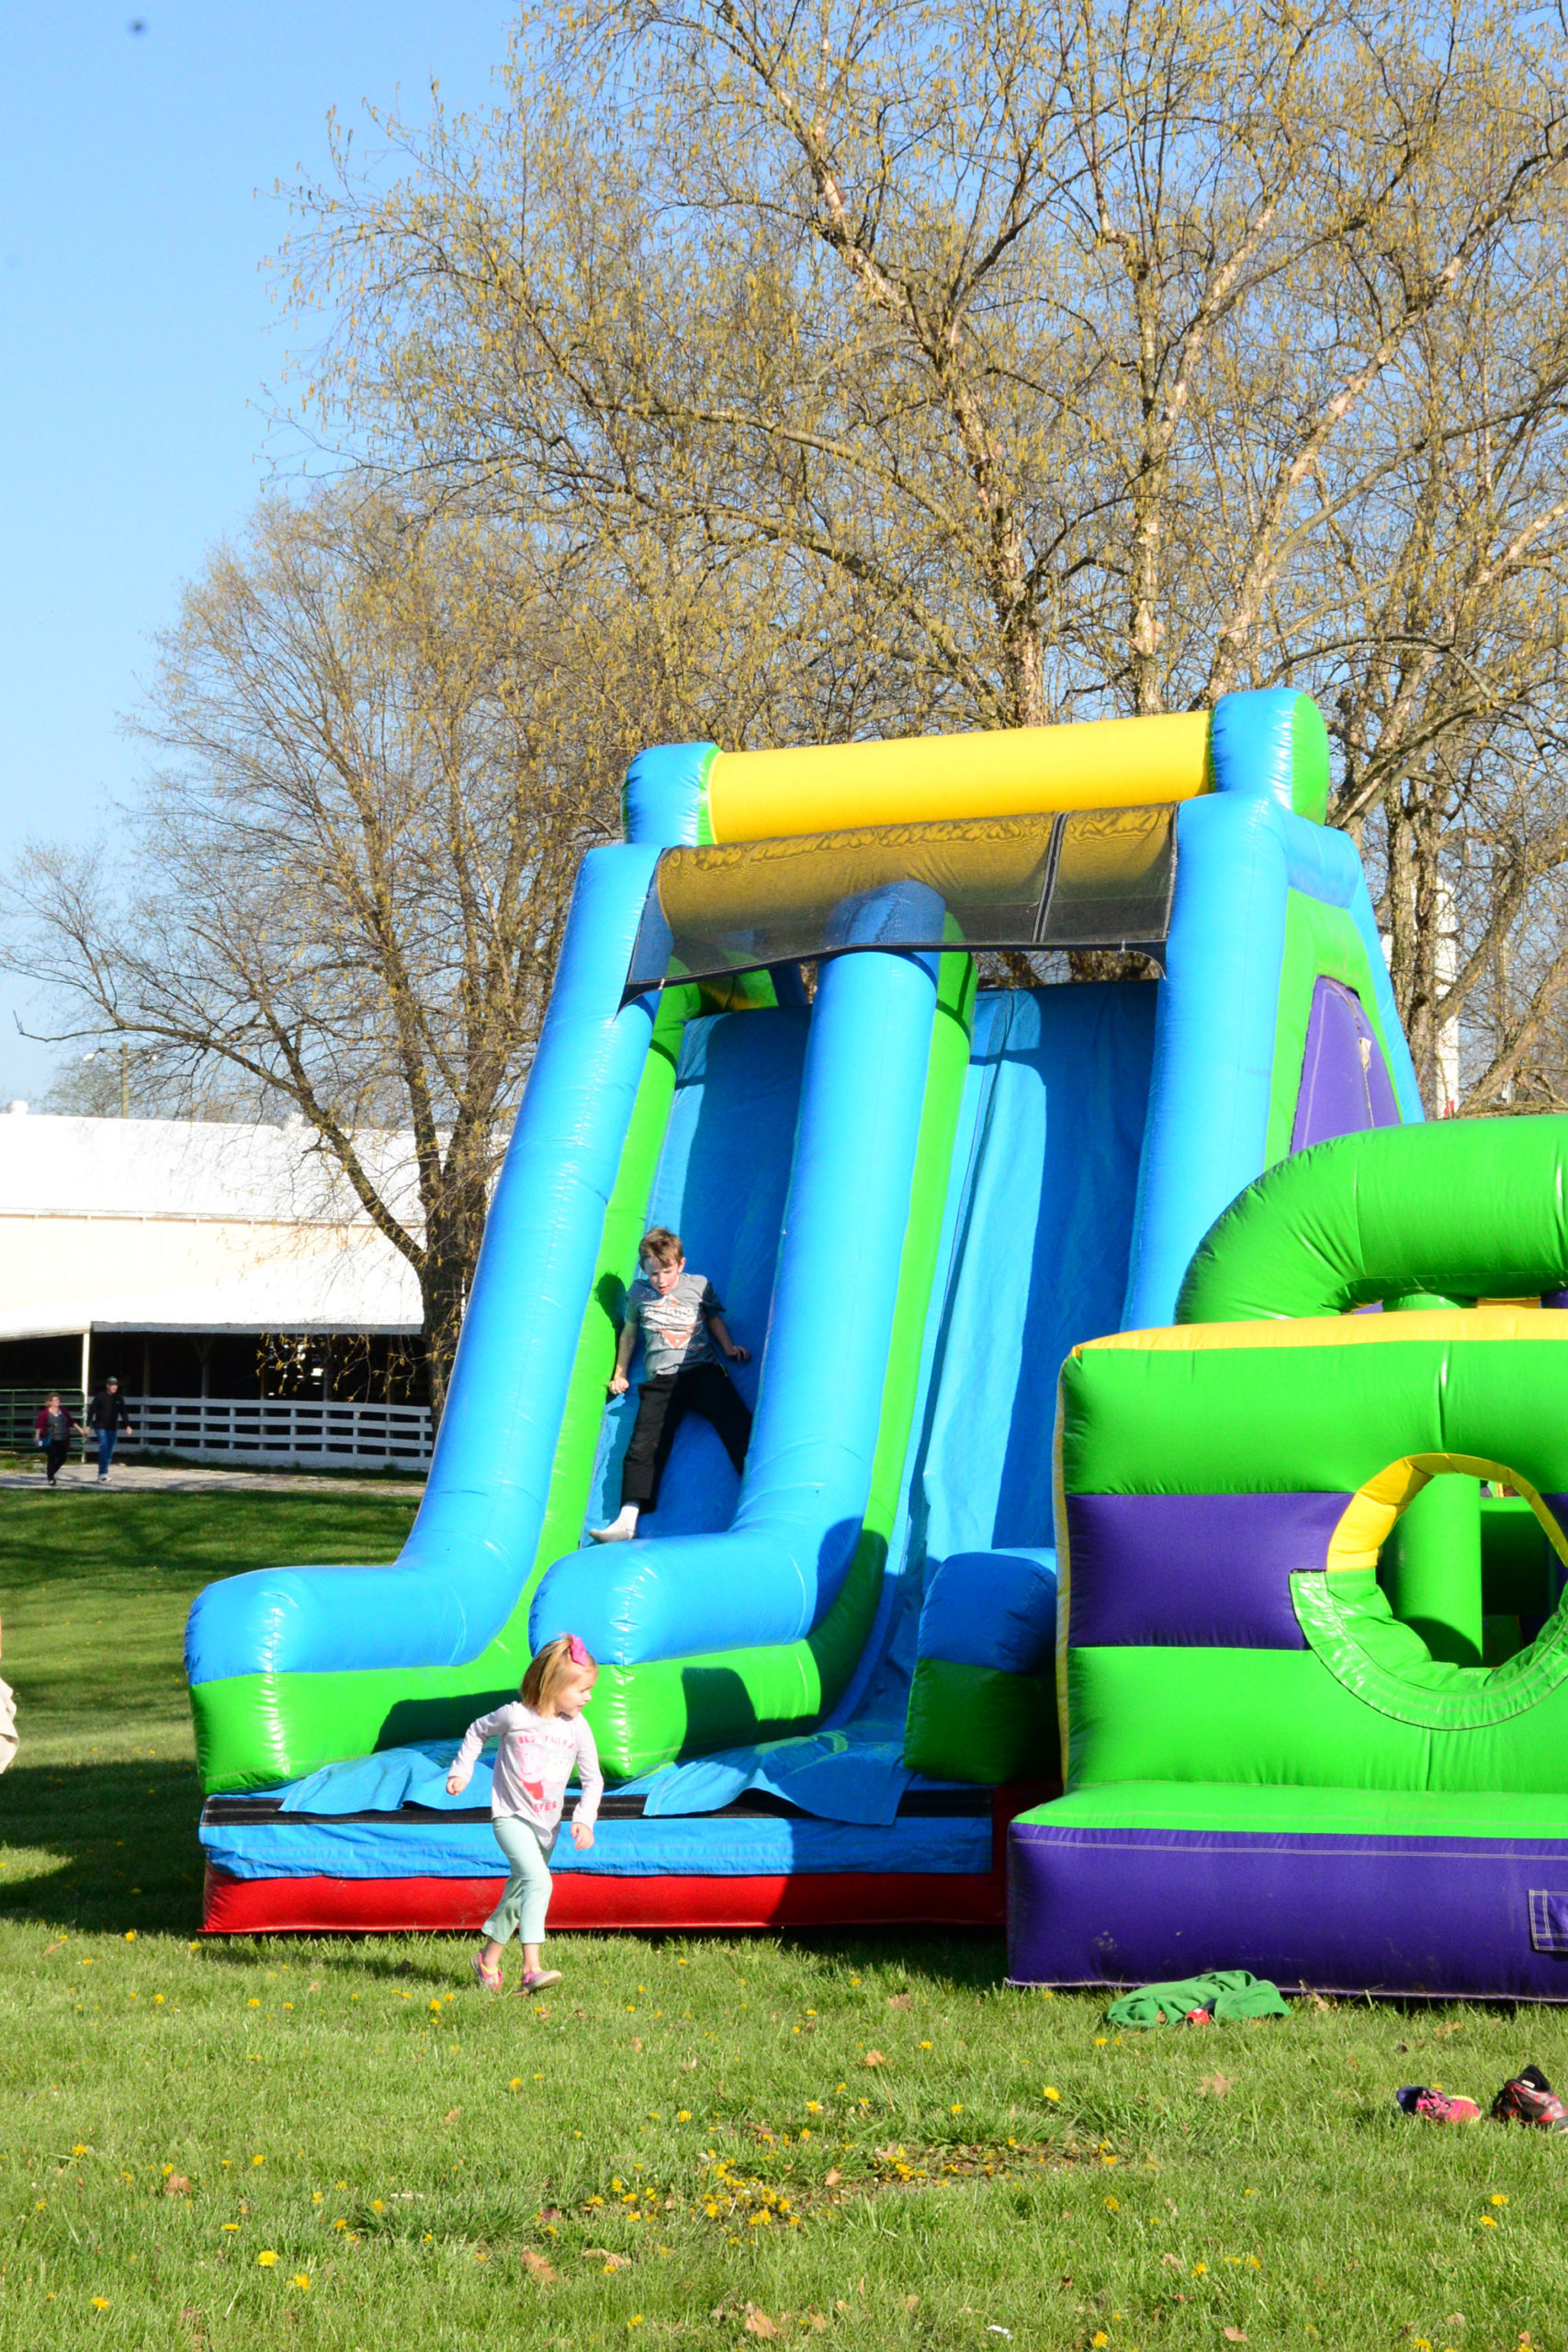 A colorful inflatable bouncy house with children playing on it outside.